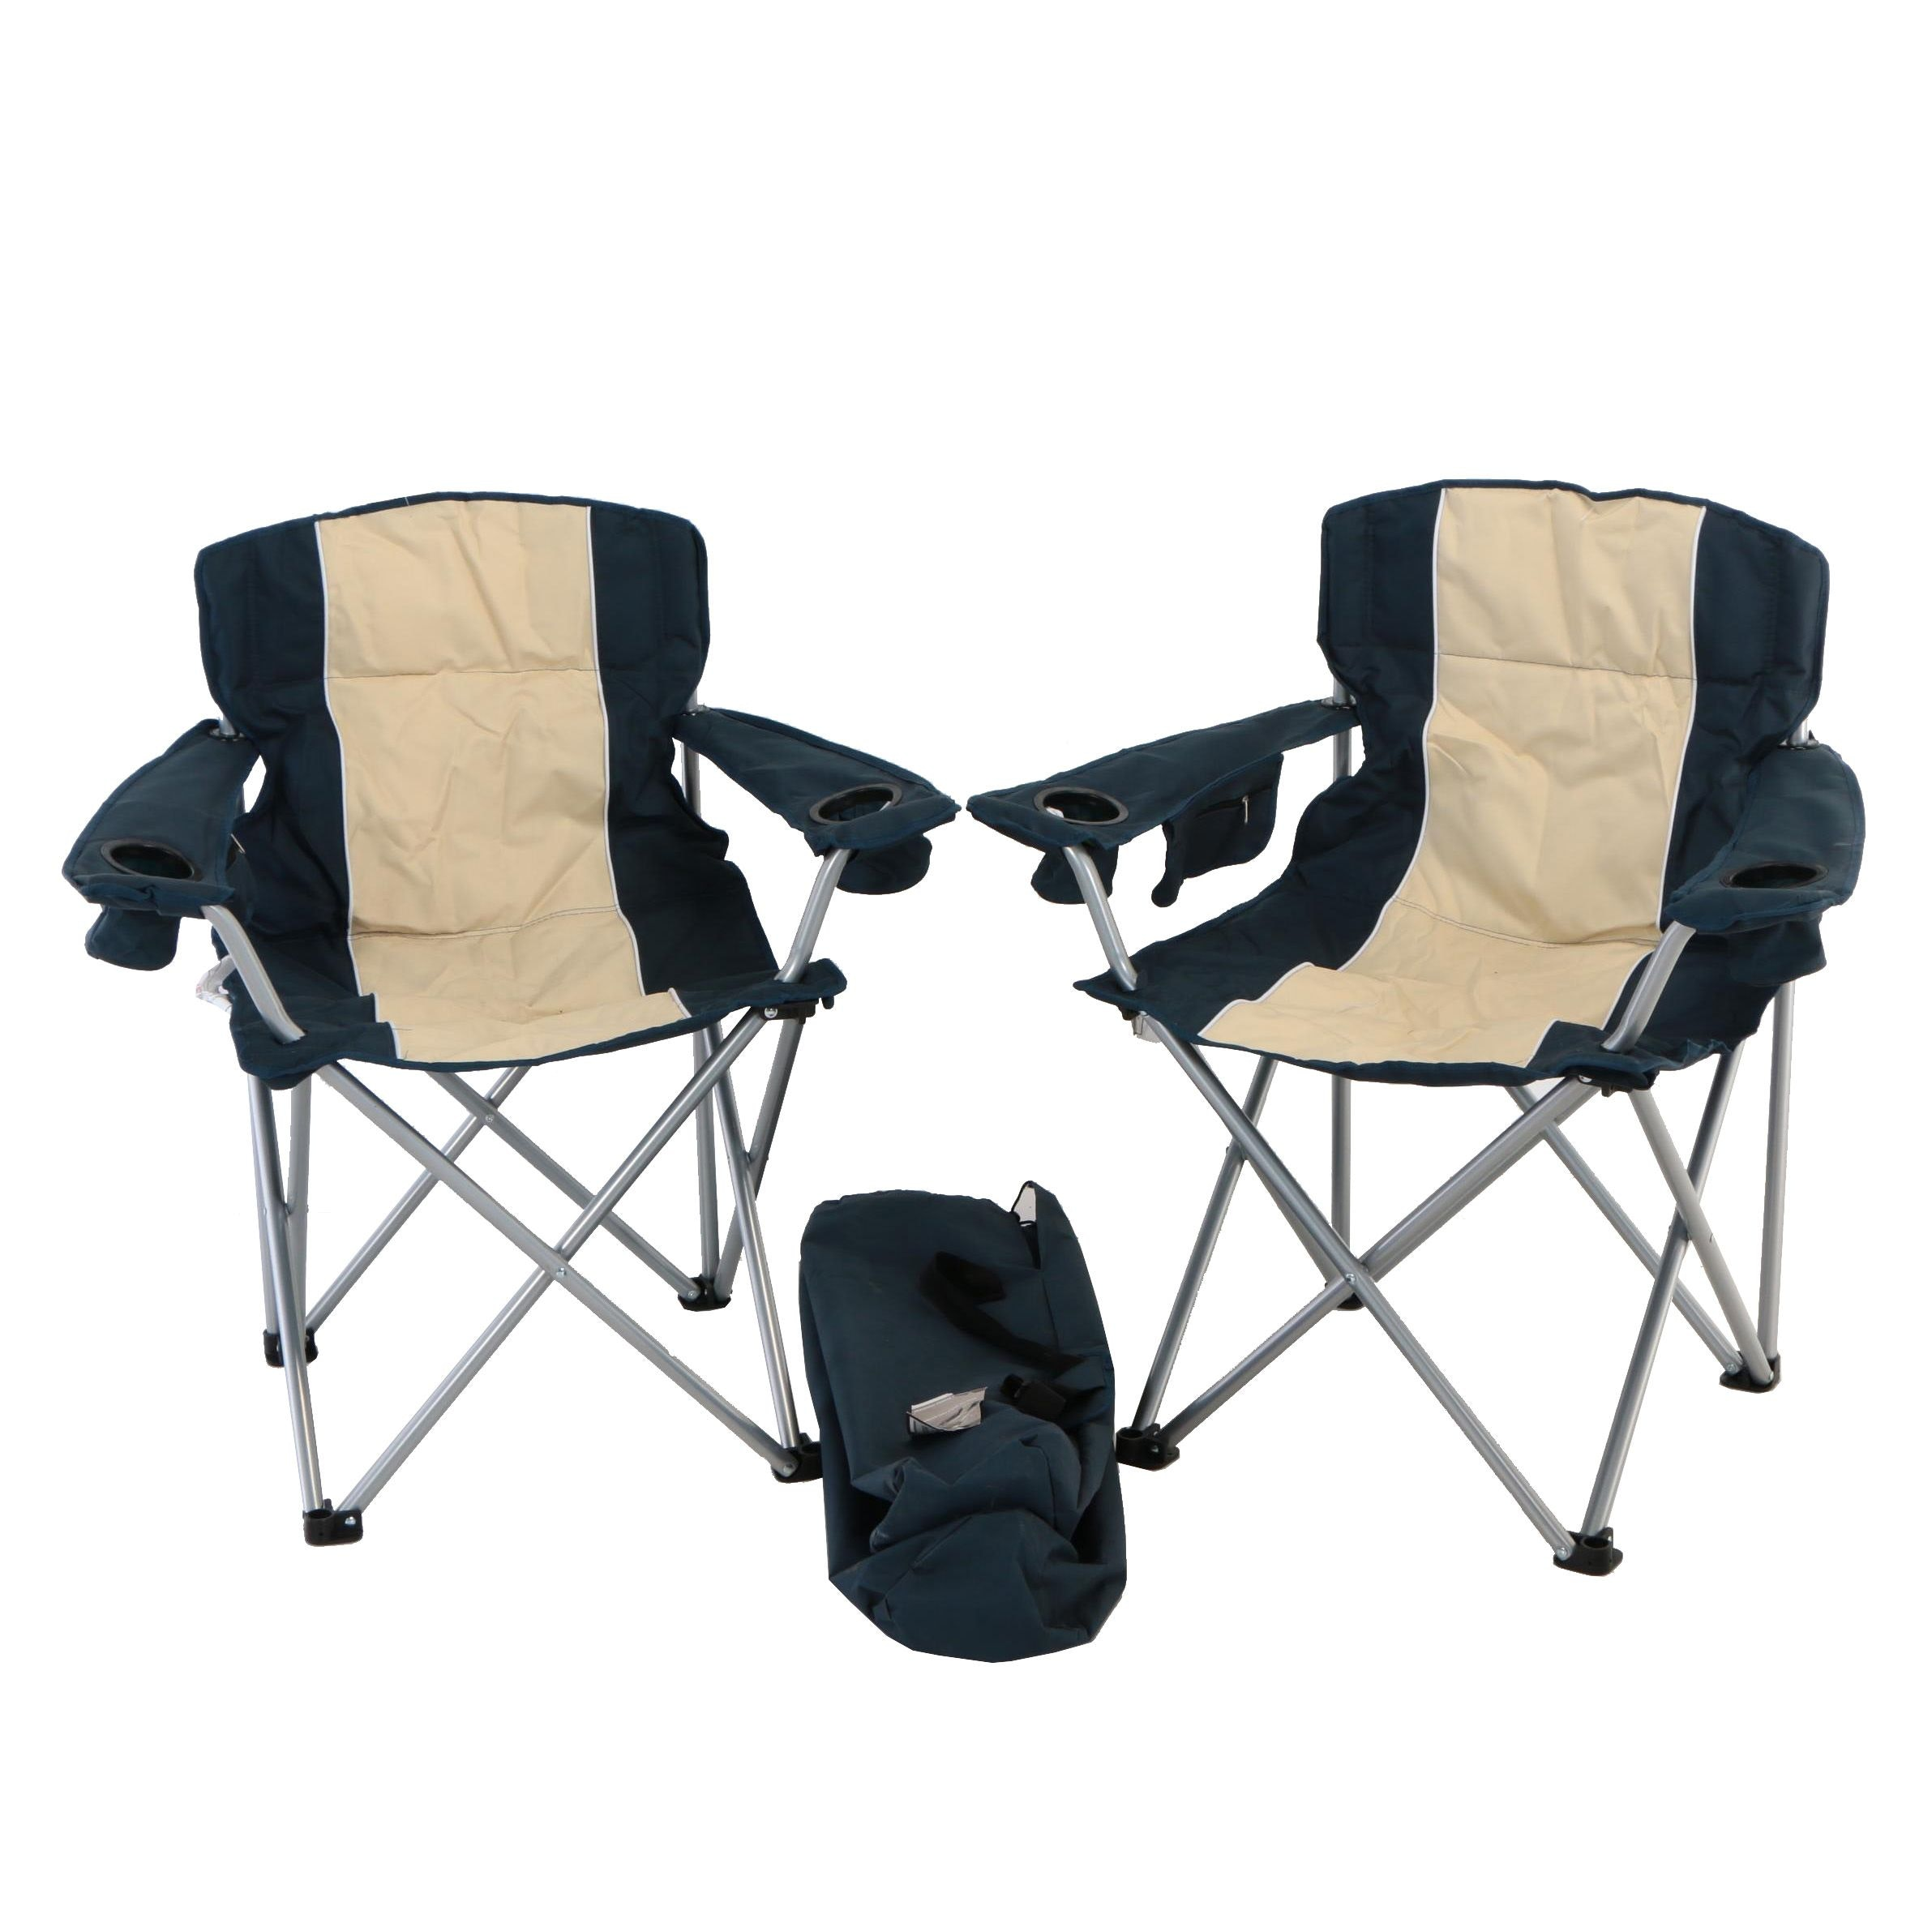 Pair of Oversized Folding Bag Chairs